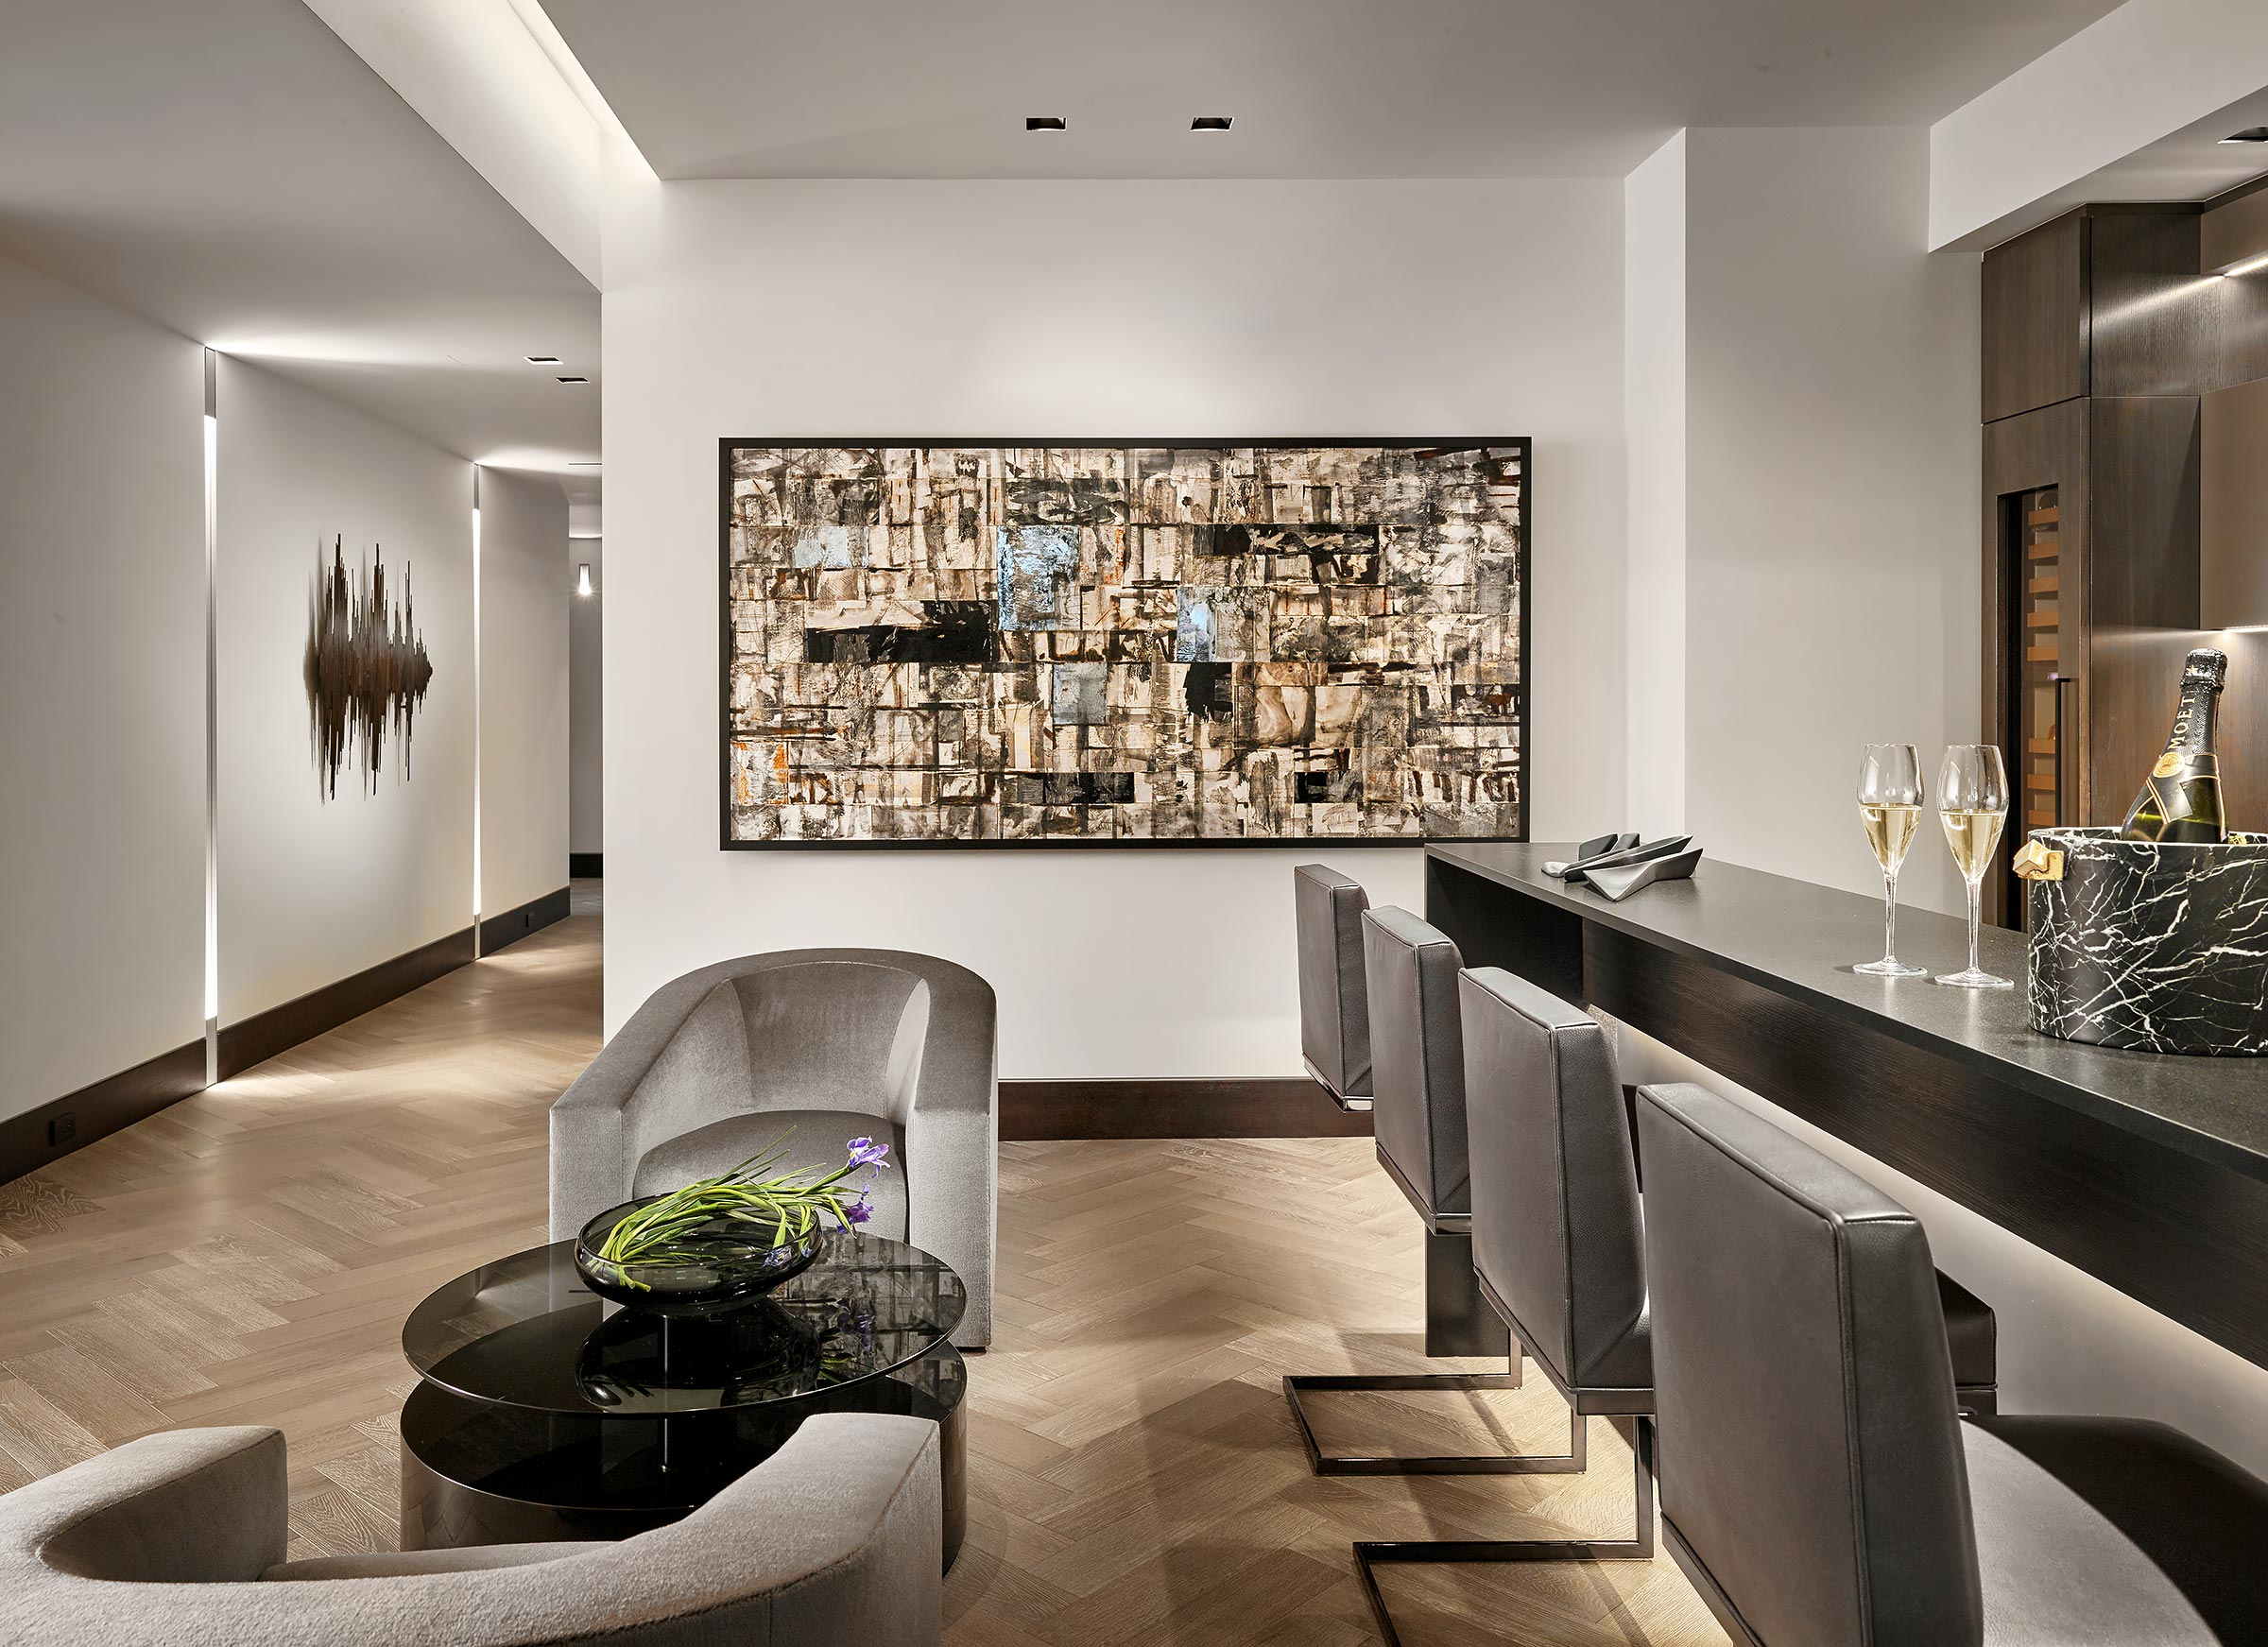 Fort-Lauderdale-Residence-Bar-Art-B-and-G-Design